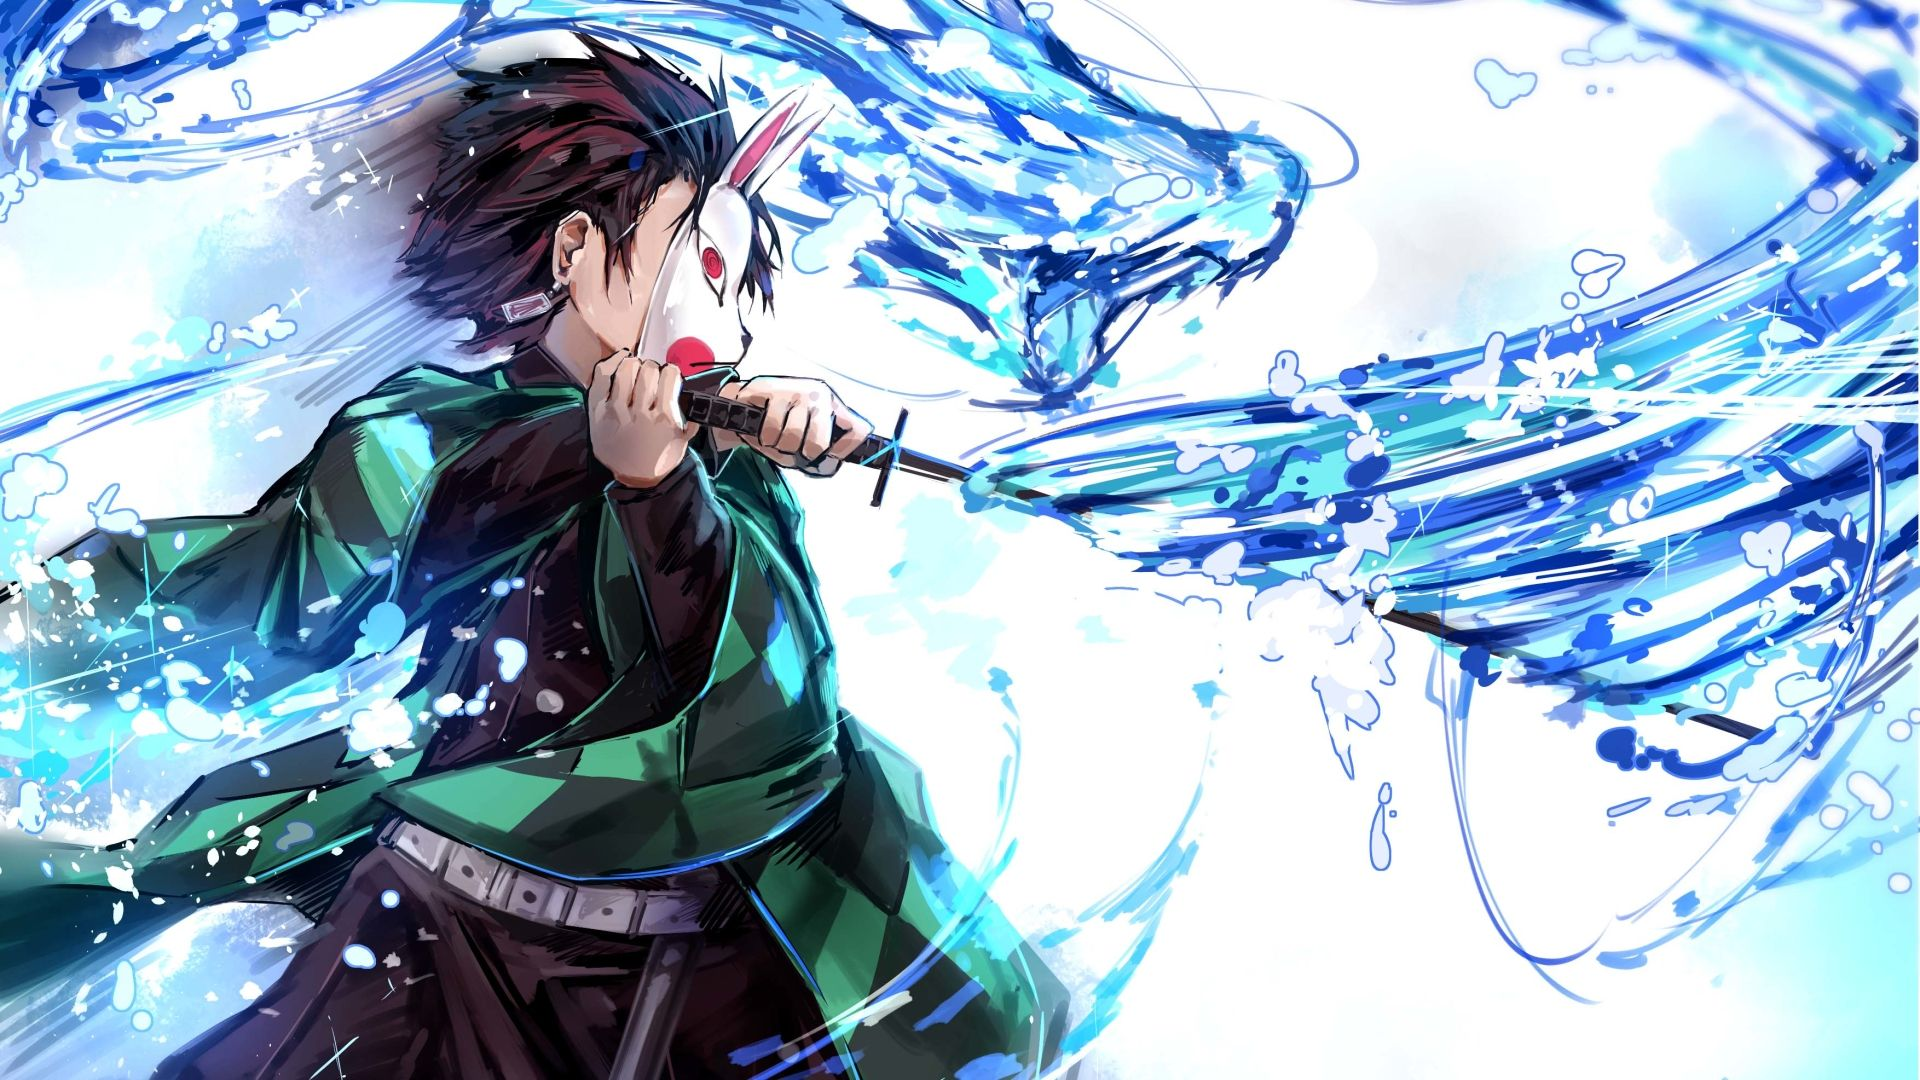 31 Demon Slayer Kimetsu No Yaiba Wallpapers Wallpaperboat